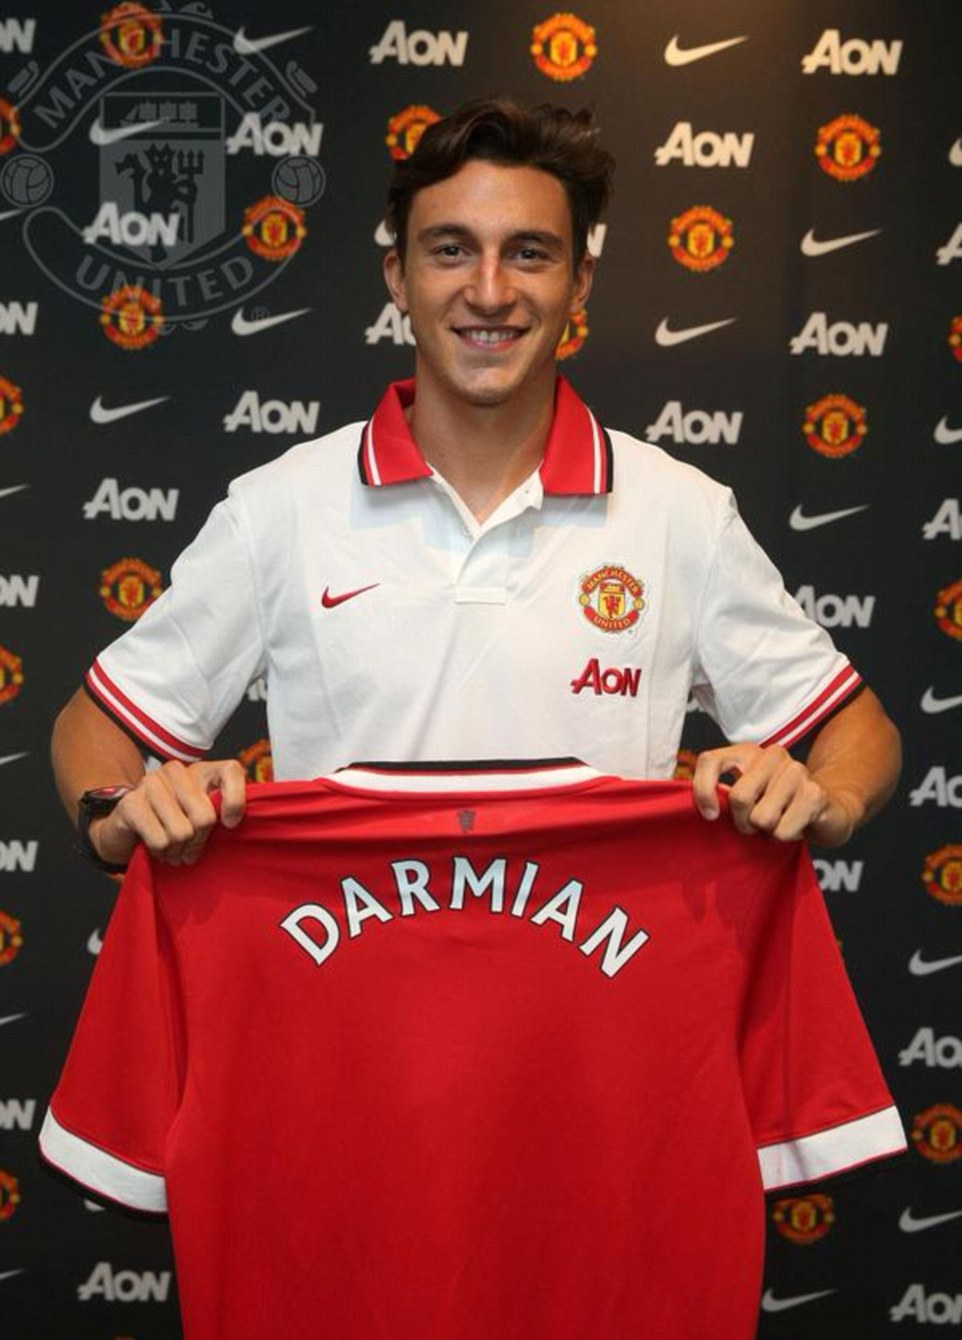 Matteo Darmian was also unveiled by the club ahead of Louis van Gaal taking the team on pre-season tour